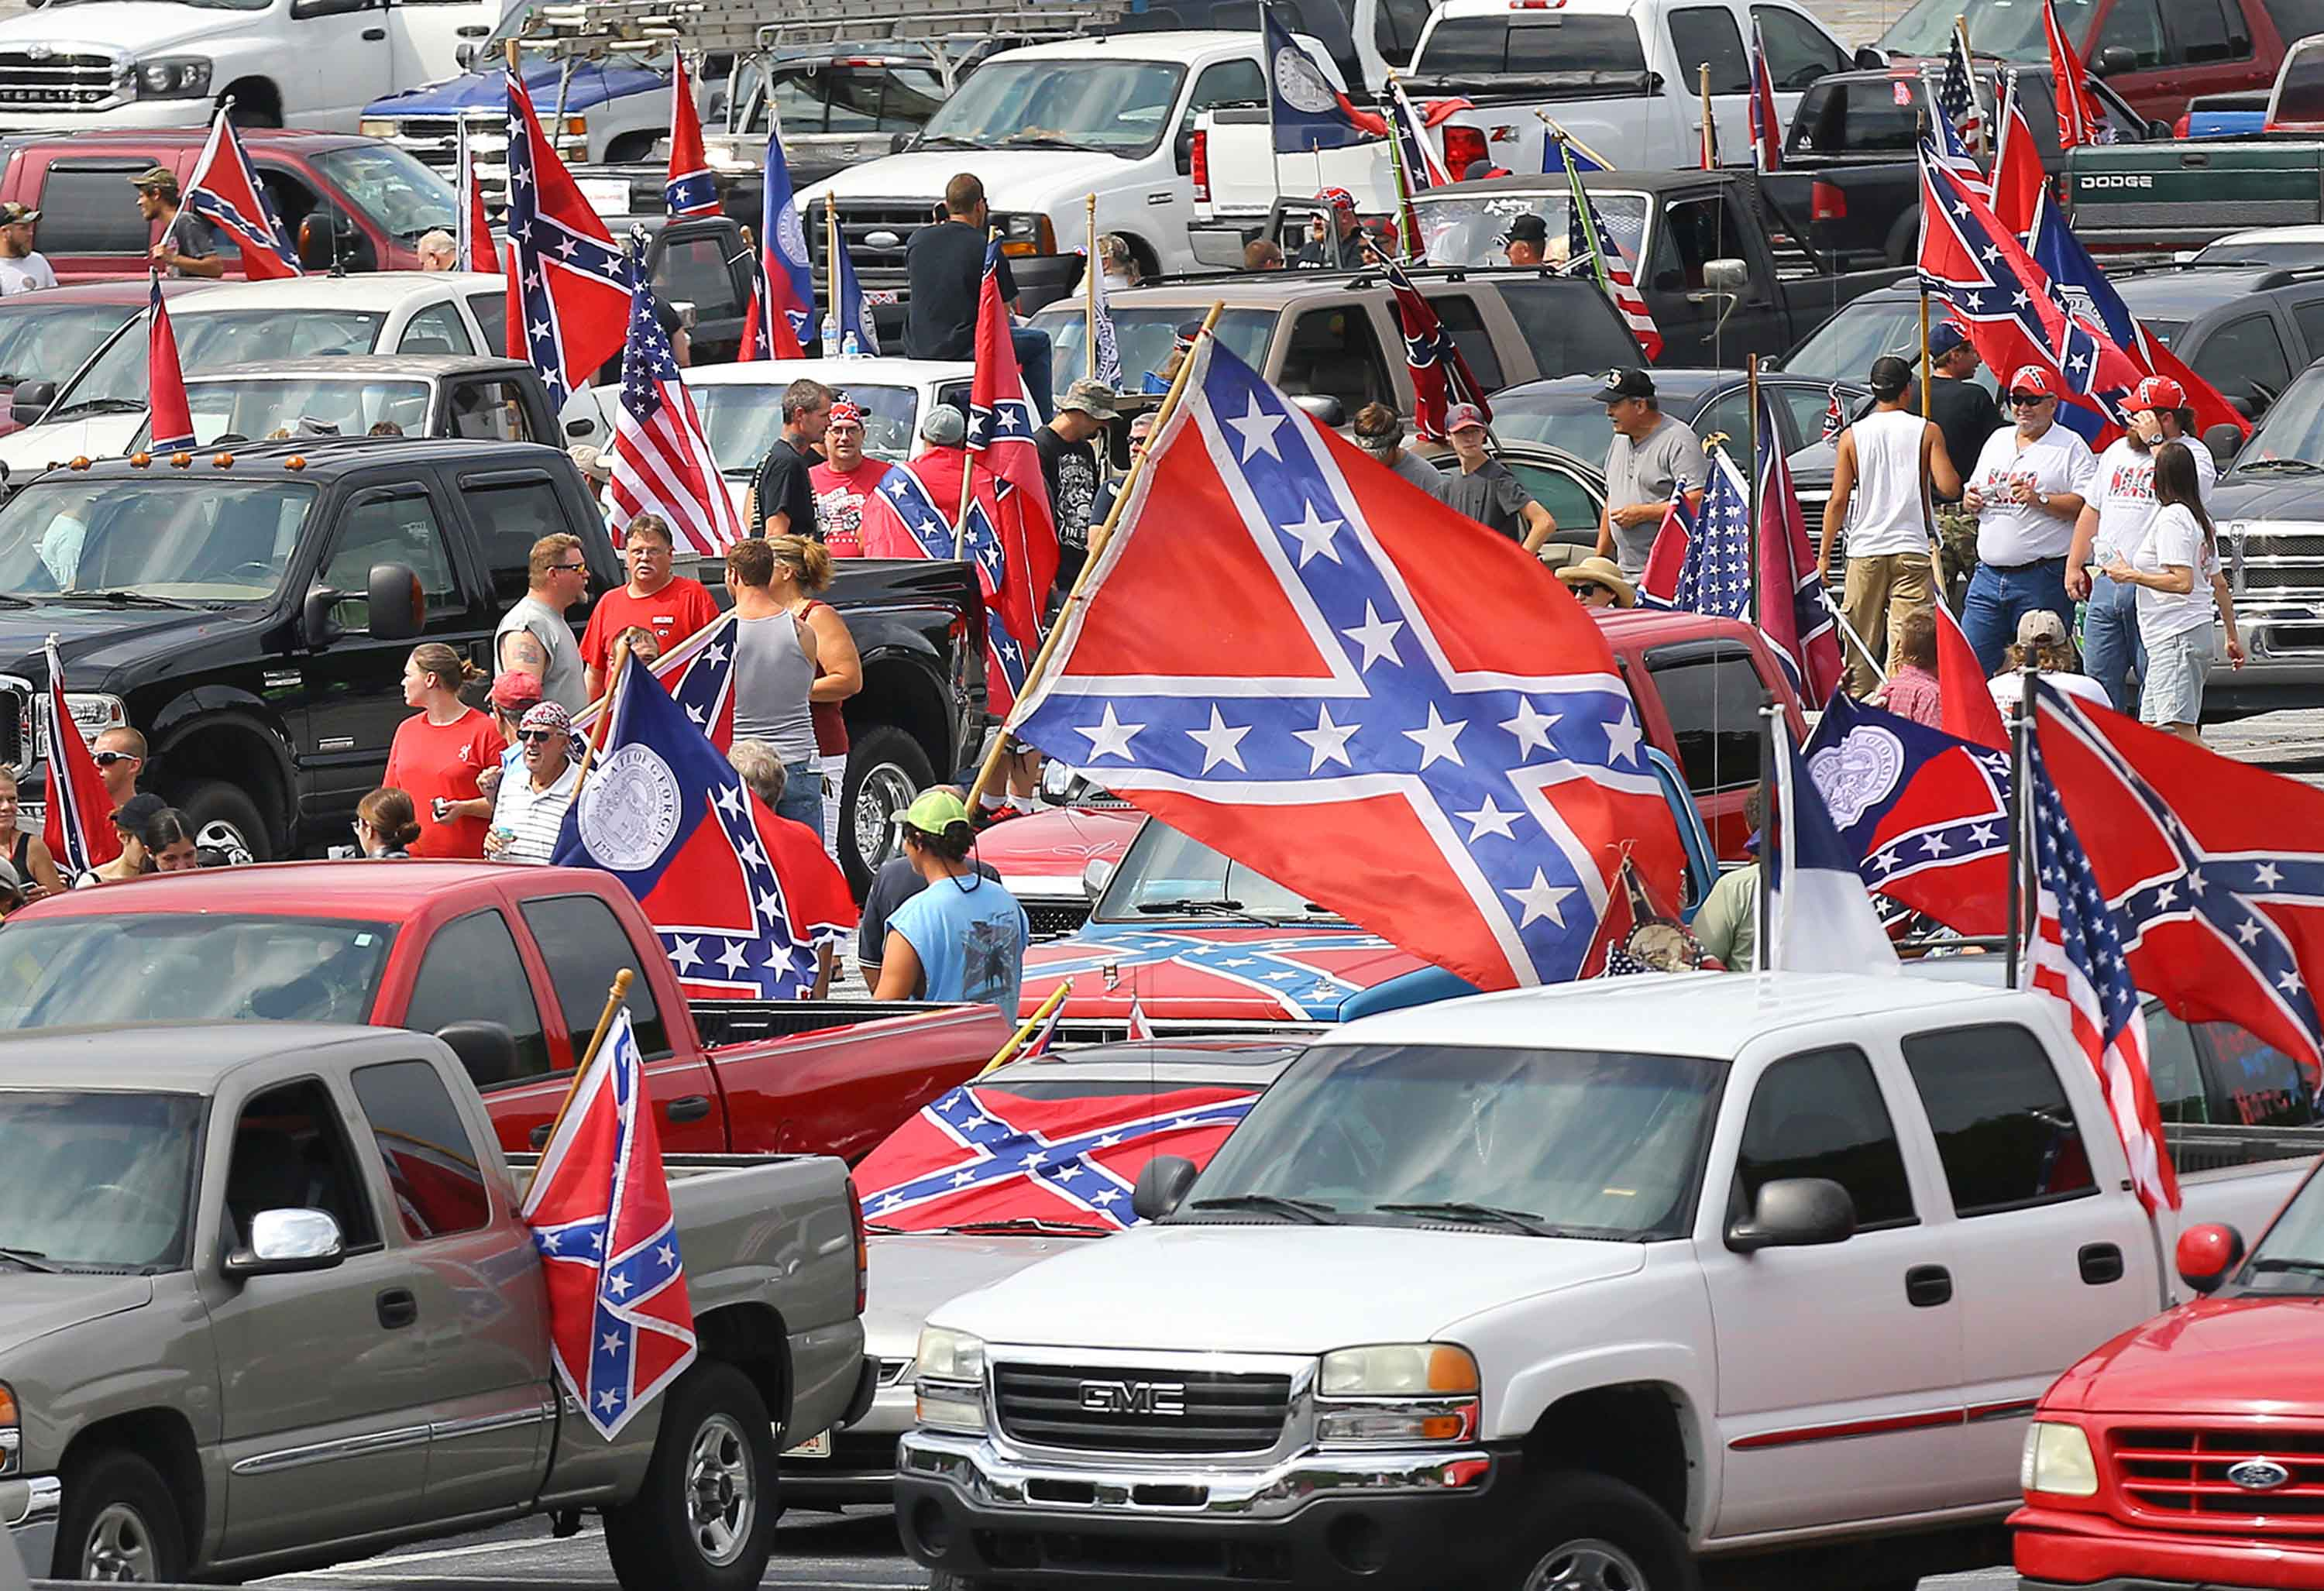 Hundreds of pro-Confederate flag and gun supporters rally at Stone Mountain Park on Saturday, Aug. 1, 2015, in Stone Mountain, Ga. (Curtis Compton/Atlanta Journal-Constitution/TNS)